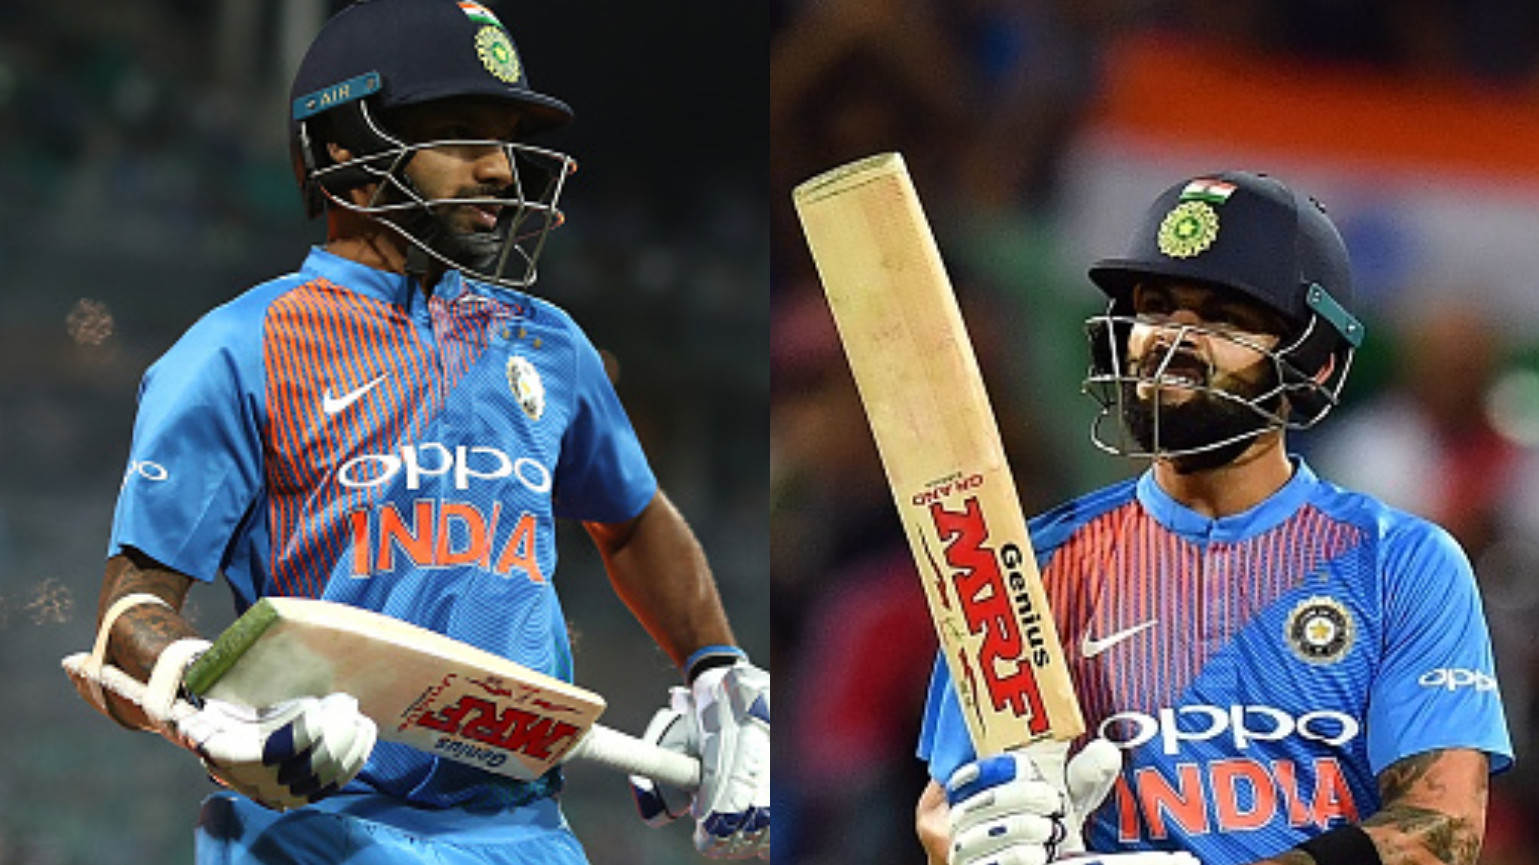 AUS v IND 2018-19: 3rd T20I – Kohli and Dhawan help India trounce Australia by 6 wkts; series leveled 1-1